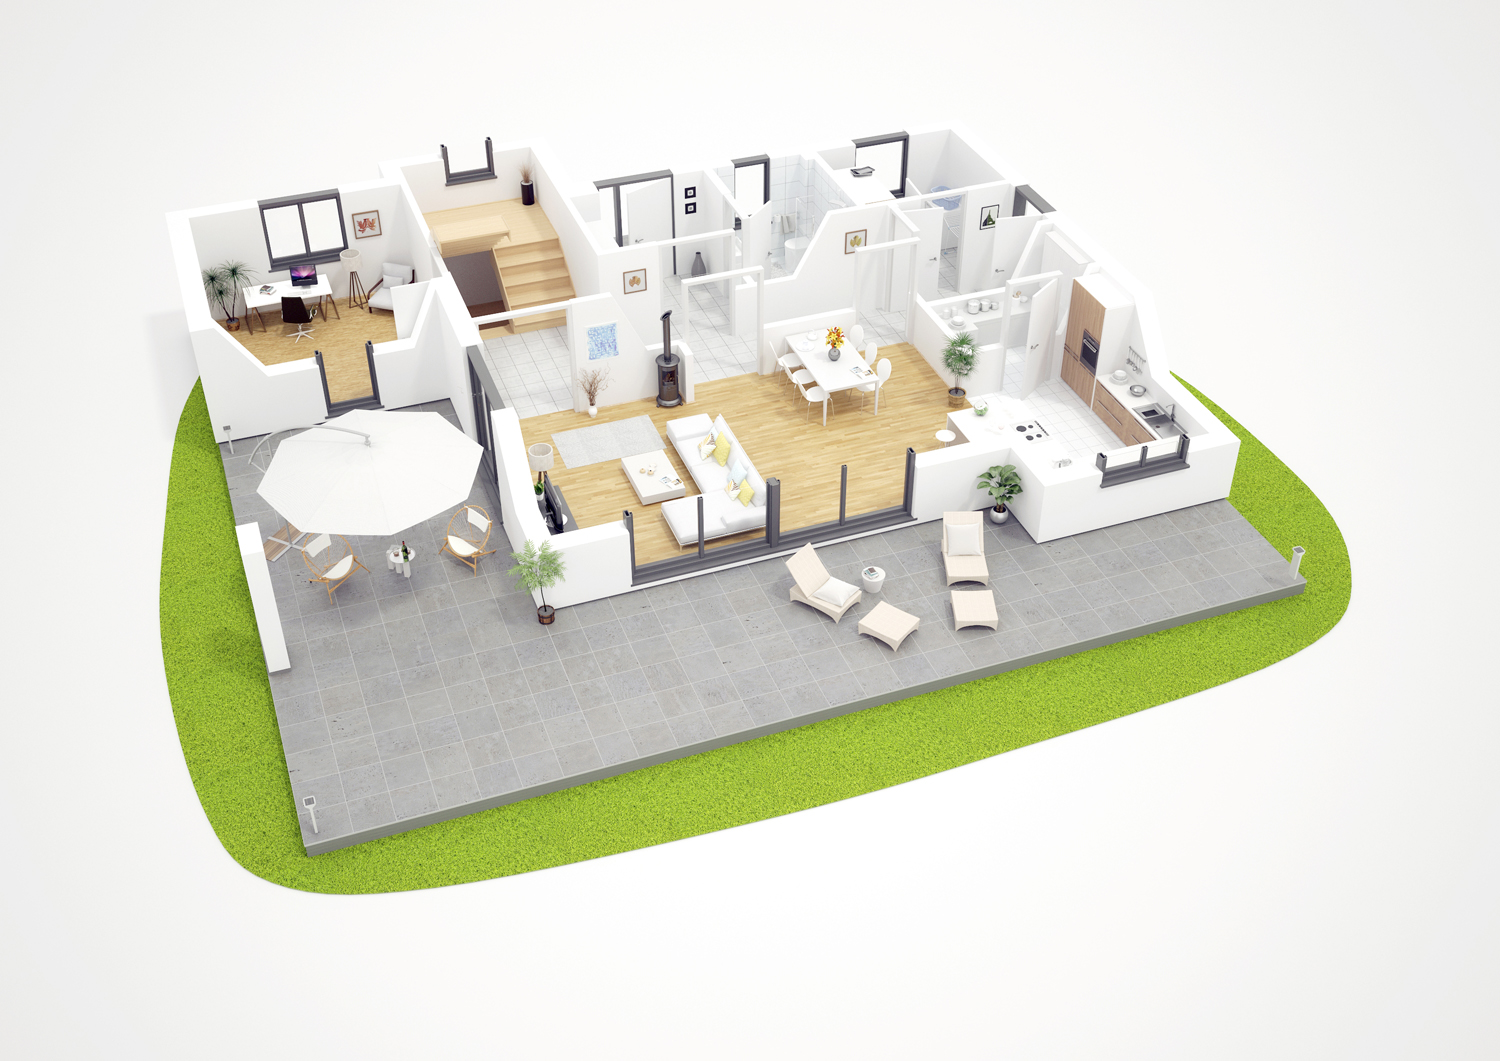 3D groundplan - single family house